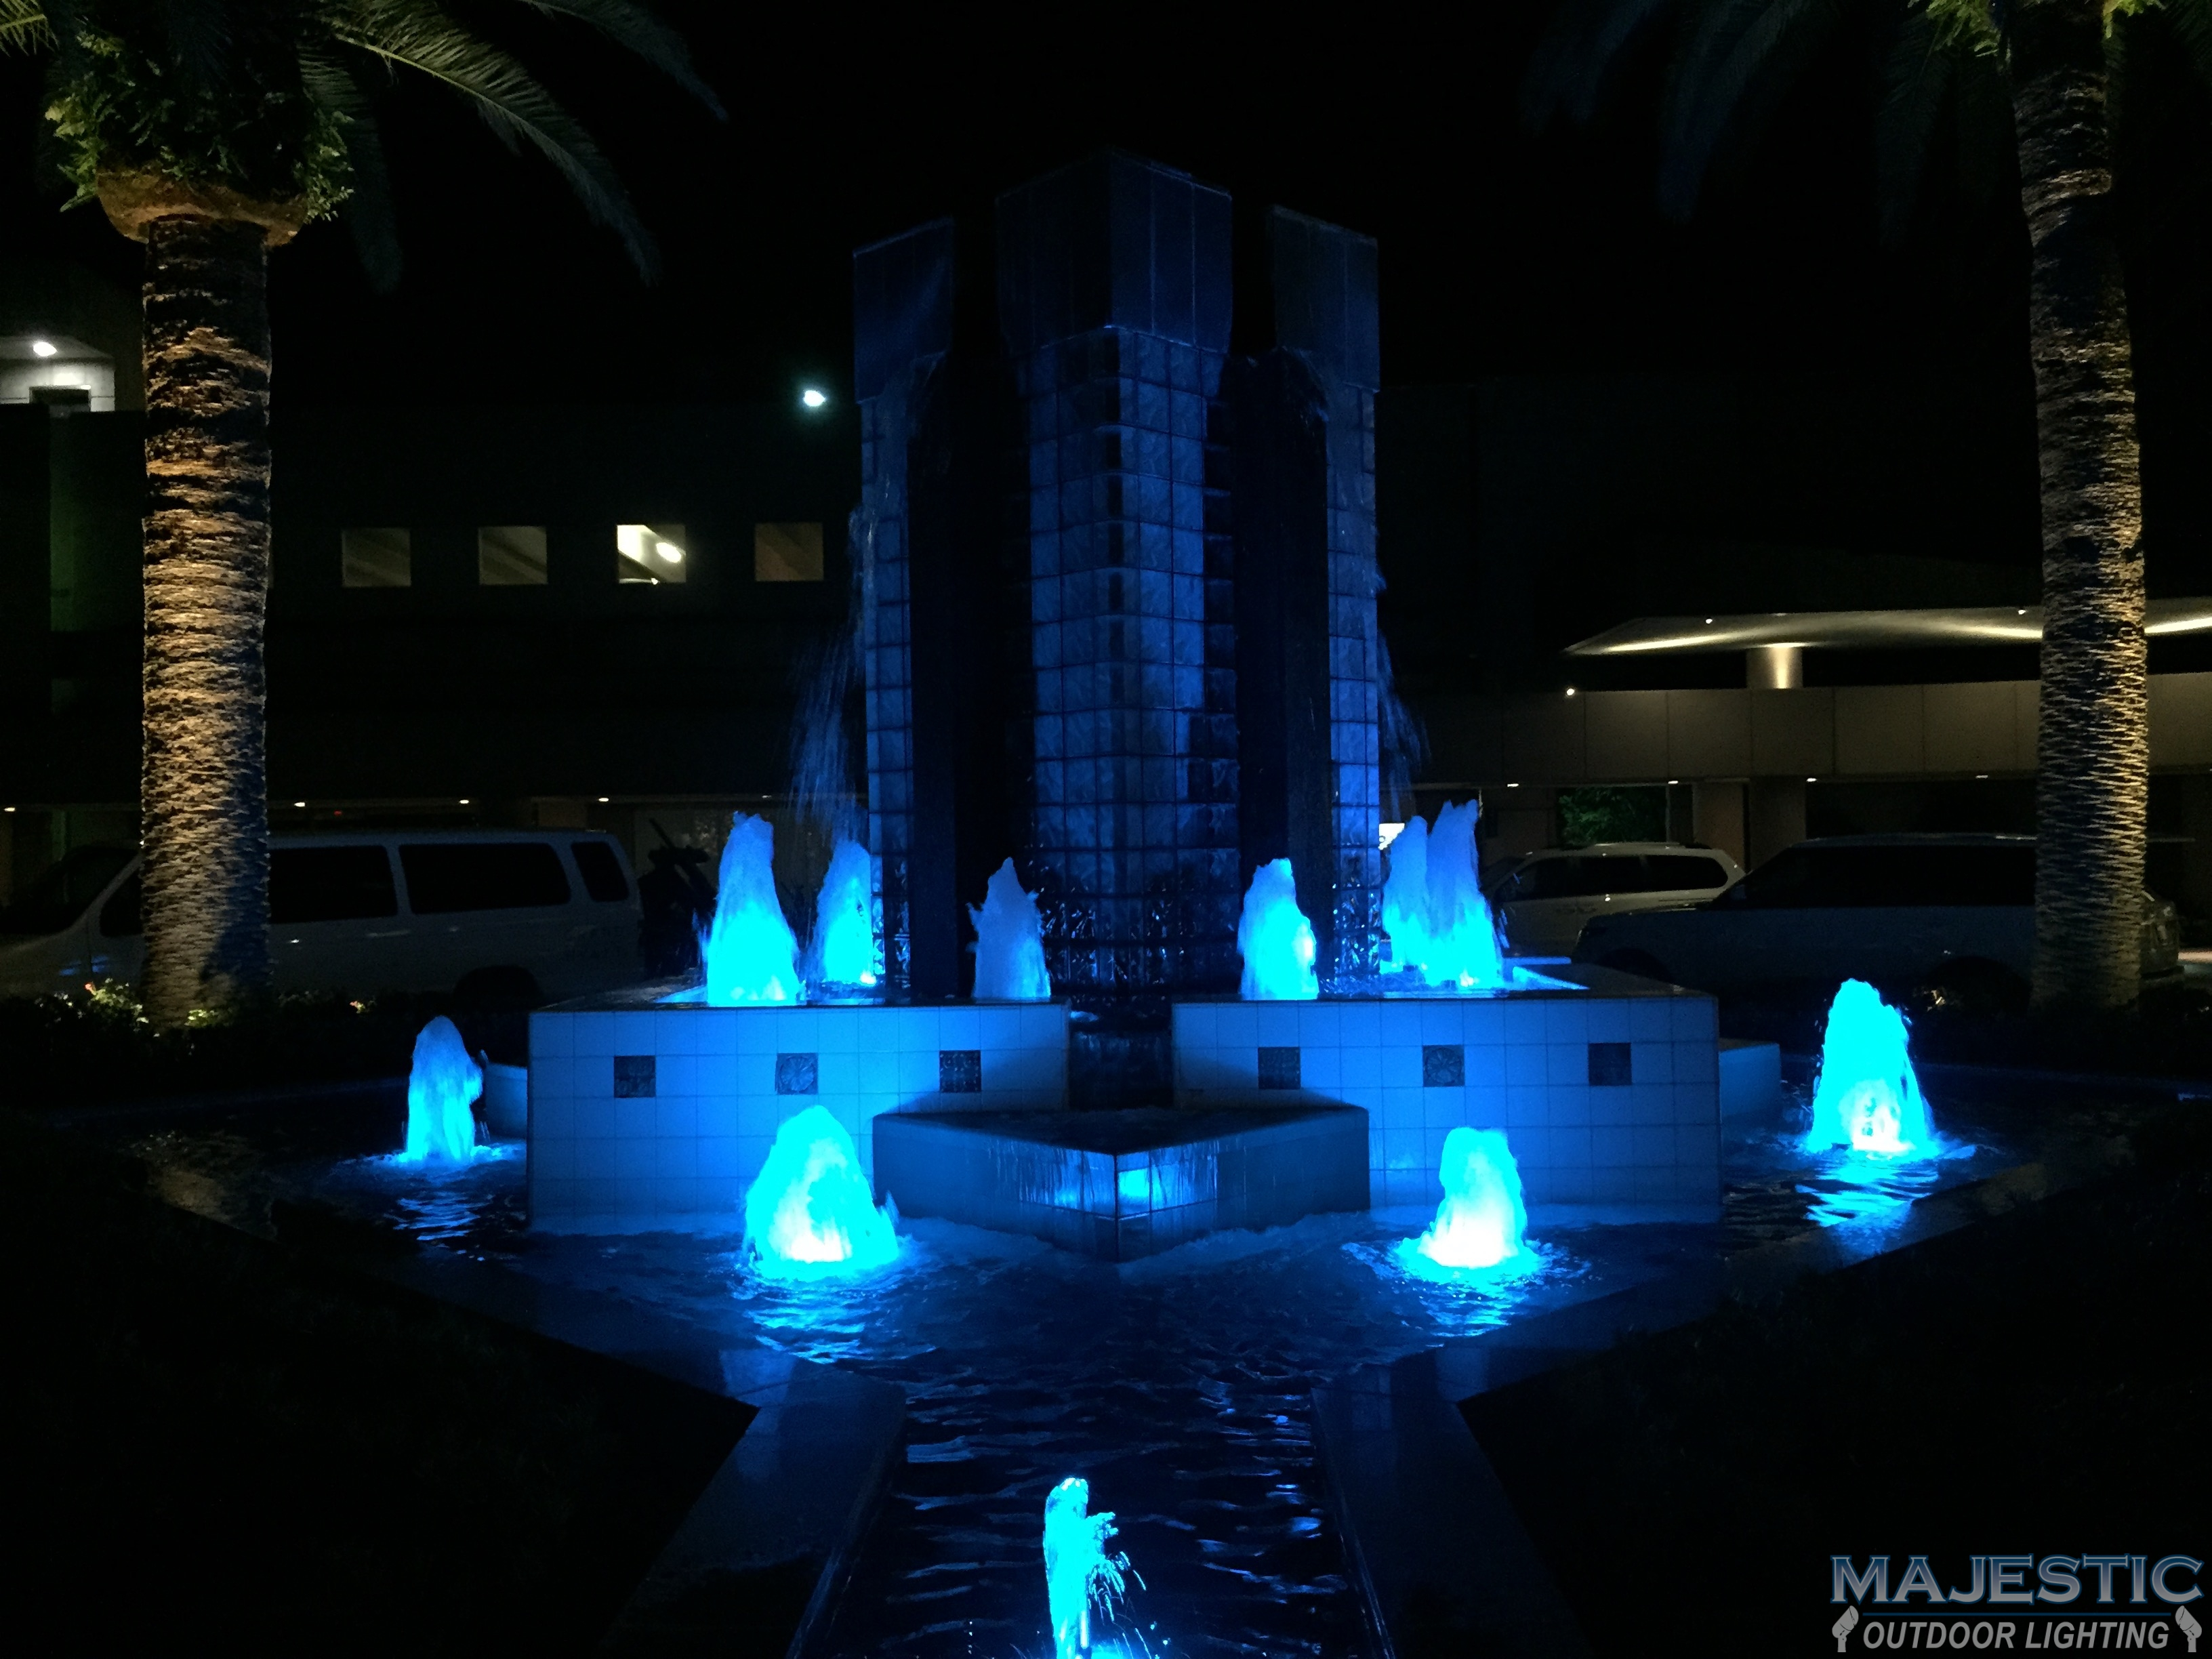 Fort worth tx dallas tx ponds water lighting gallery for Pond lights